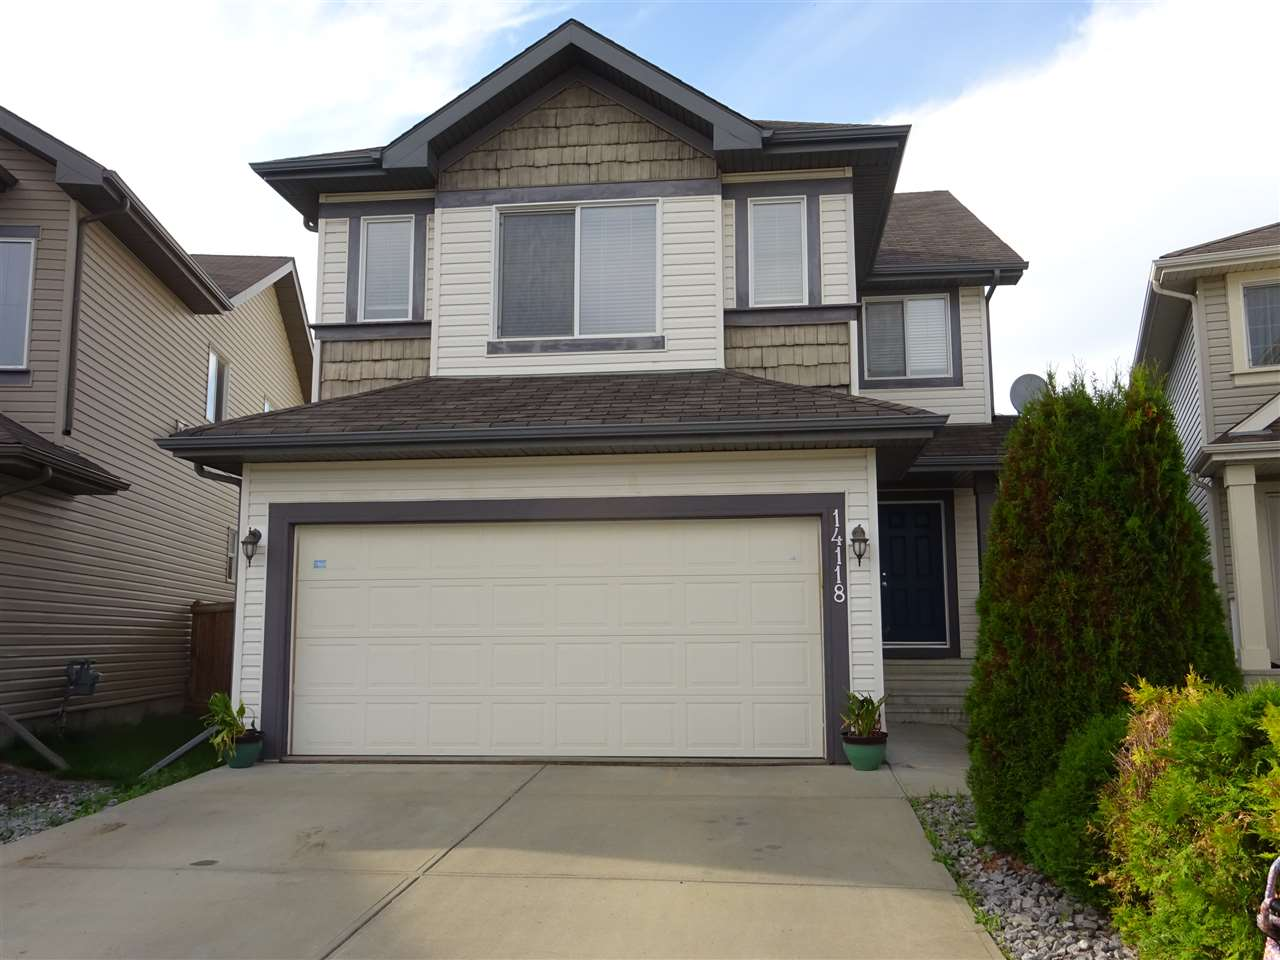 MLS® listing #E4168404 for sale located at 14118 147A Ave